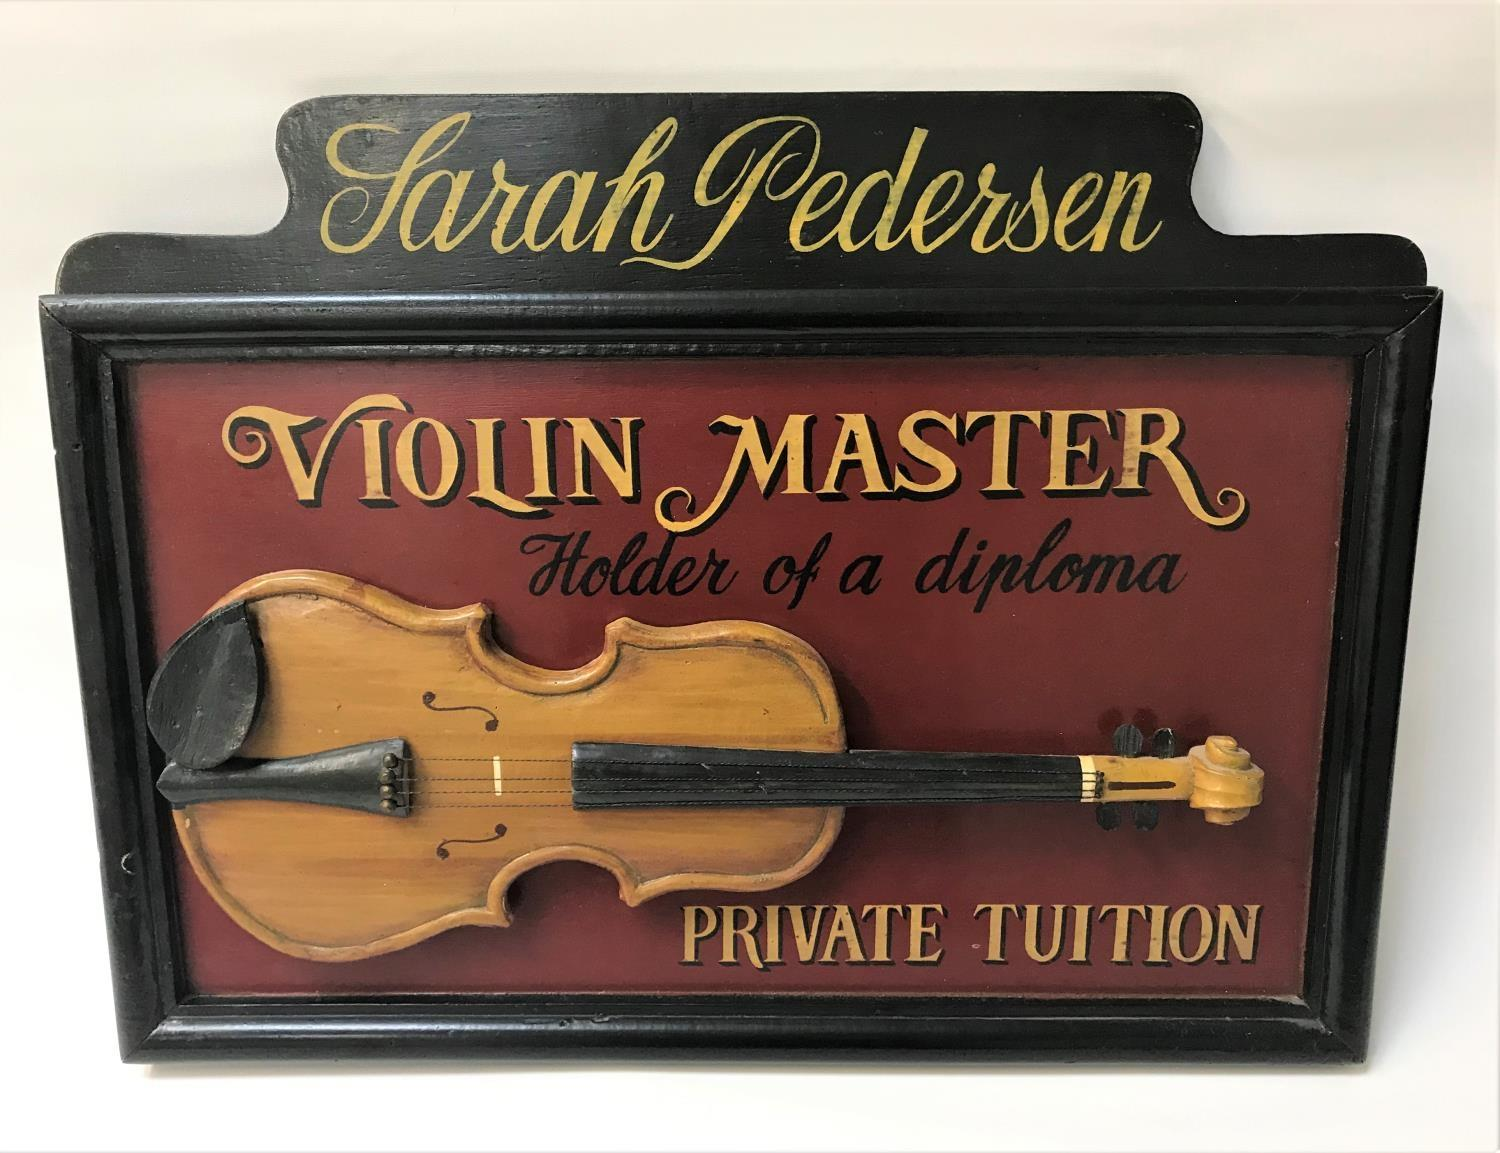 Lot 261 - REPRODUCTION VIOLIN TEACHERS SIGN in wood with a raised violin and bearing the legend 'Sarah